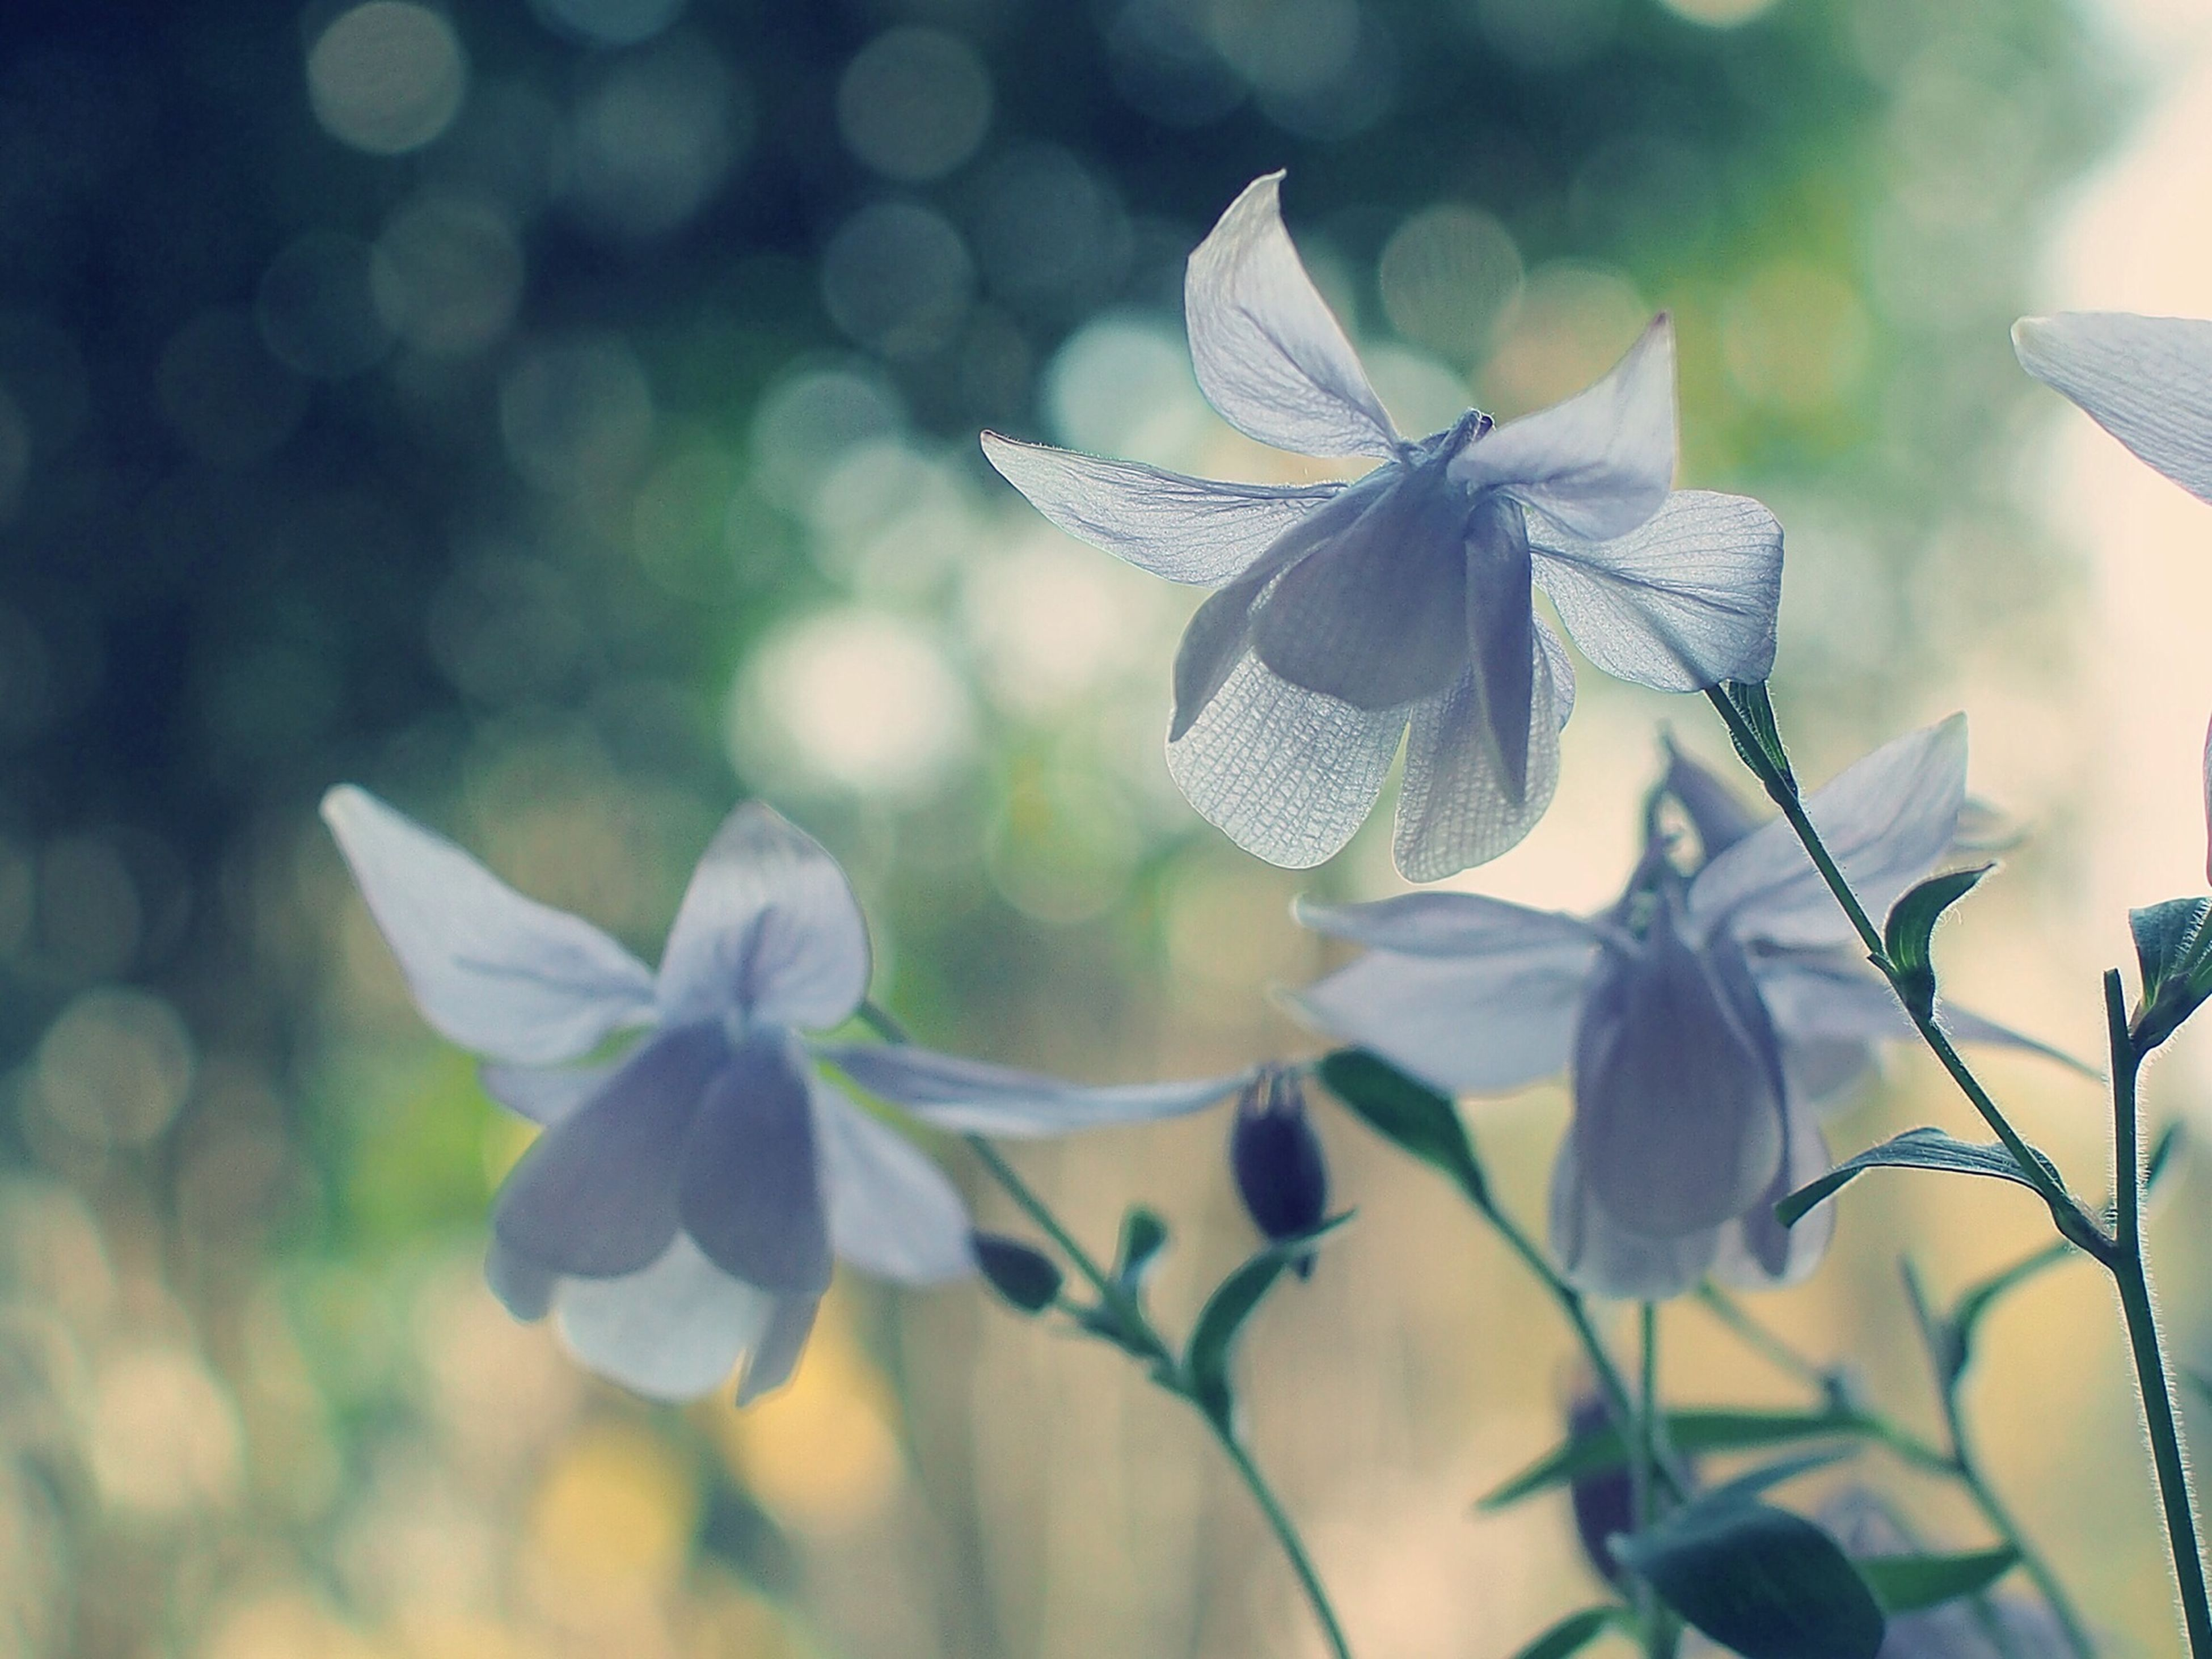 flower, fragility, petal, freshness, focus on foreground, growth, close-up, flower head, leaf, plant, beauty in nature, nature, blooming, white color, in bloom, day, stem, outdoors, no people, pollen